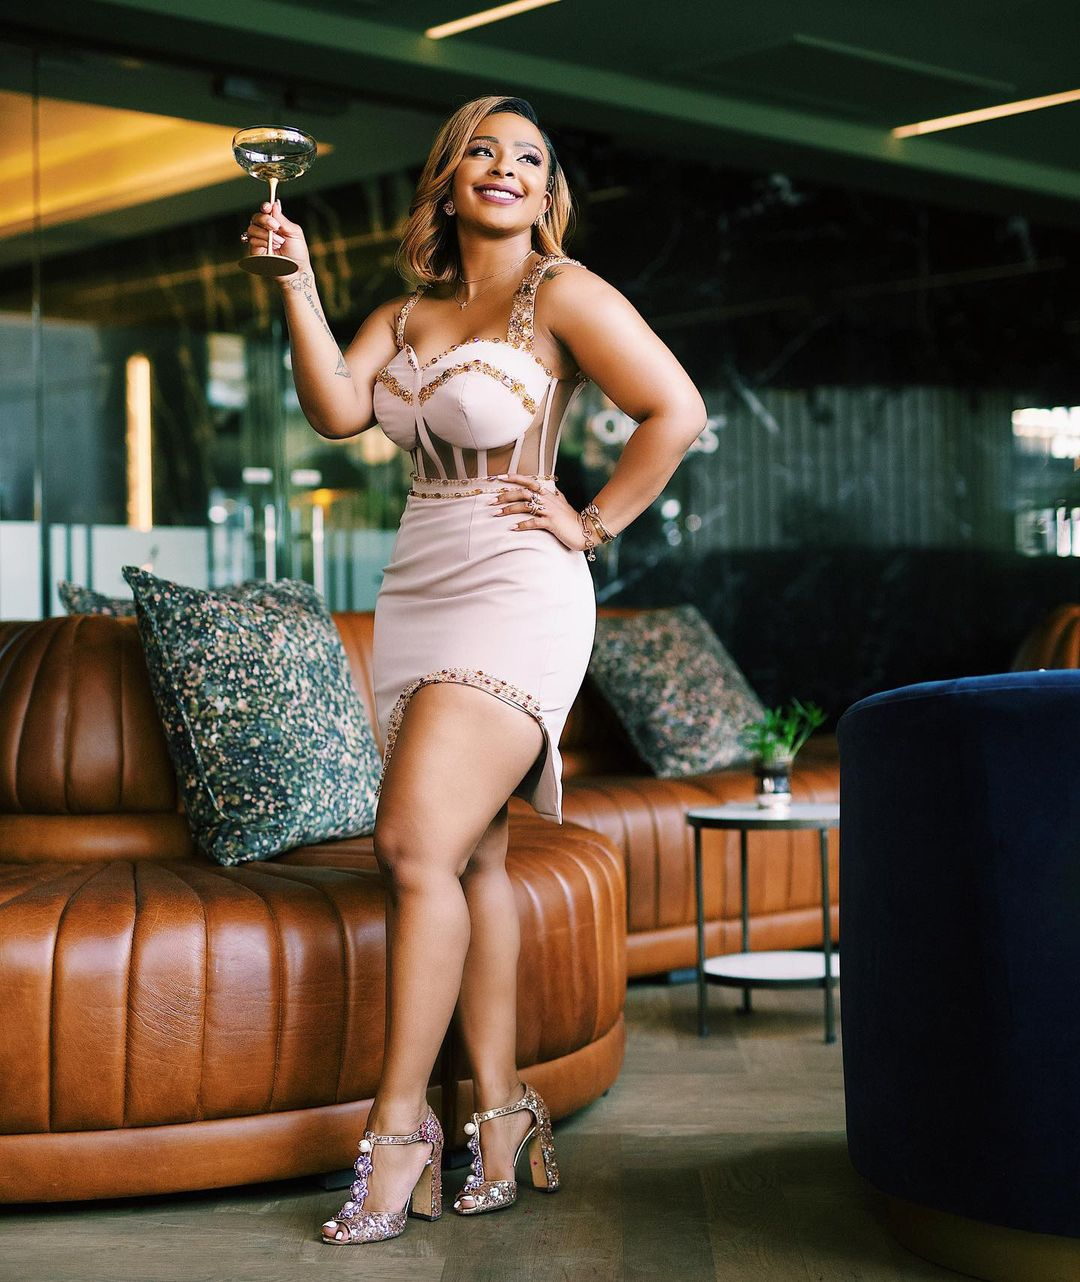 Boity Thulo Keeps It Sexy And Classy